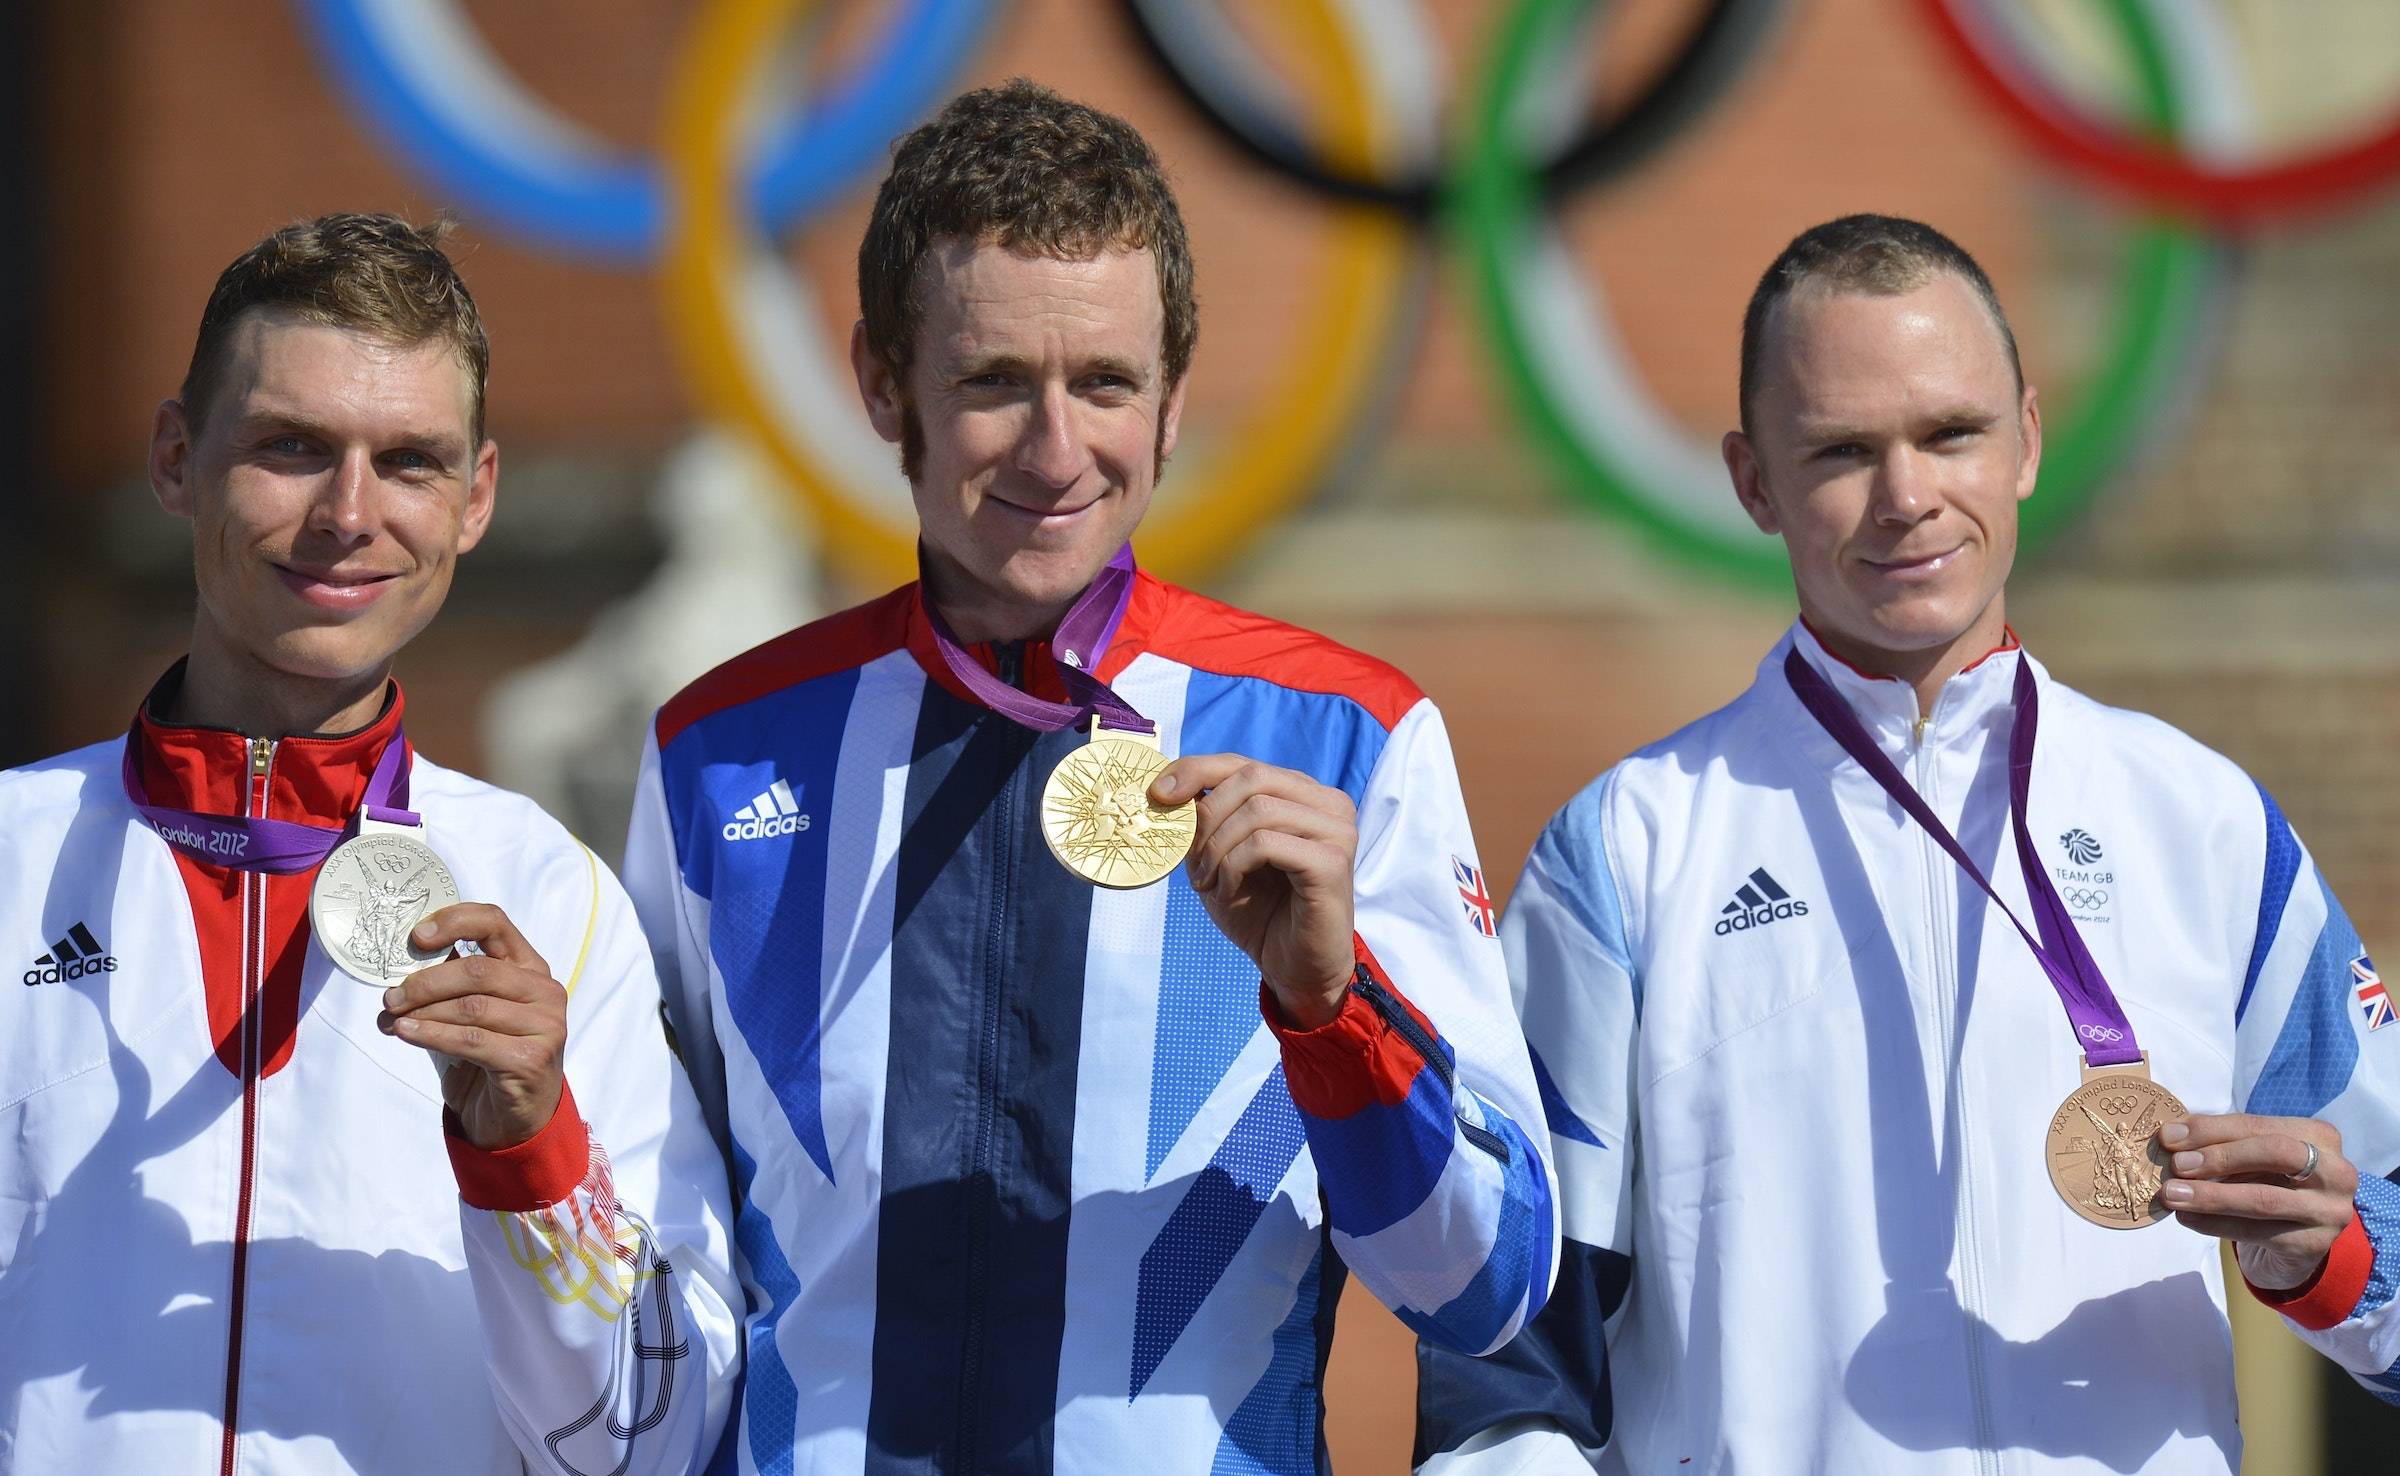 Bradley Wiggins, Chris Froome, Tony Martin, Olympic time trial, podium, London 2012, pic: ©Sirotti